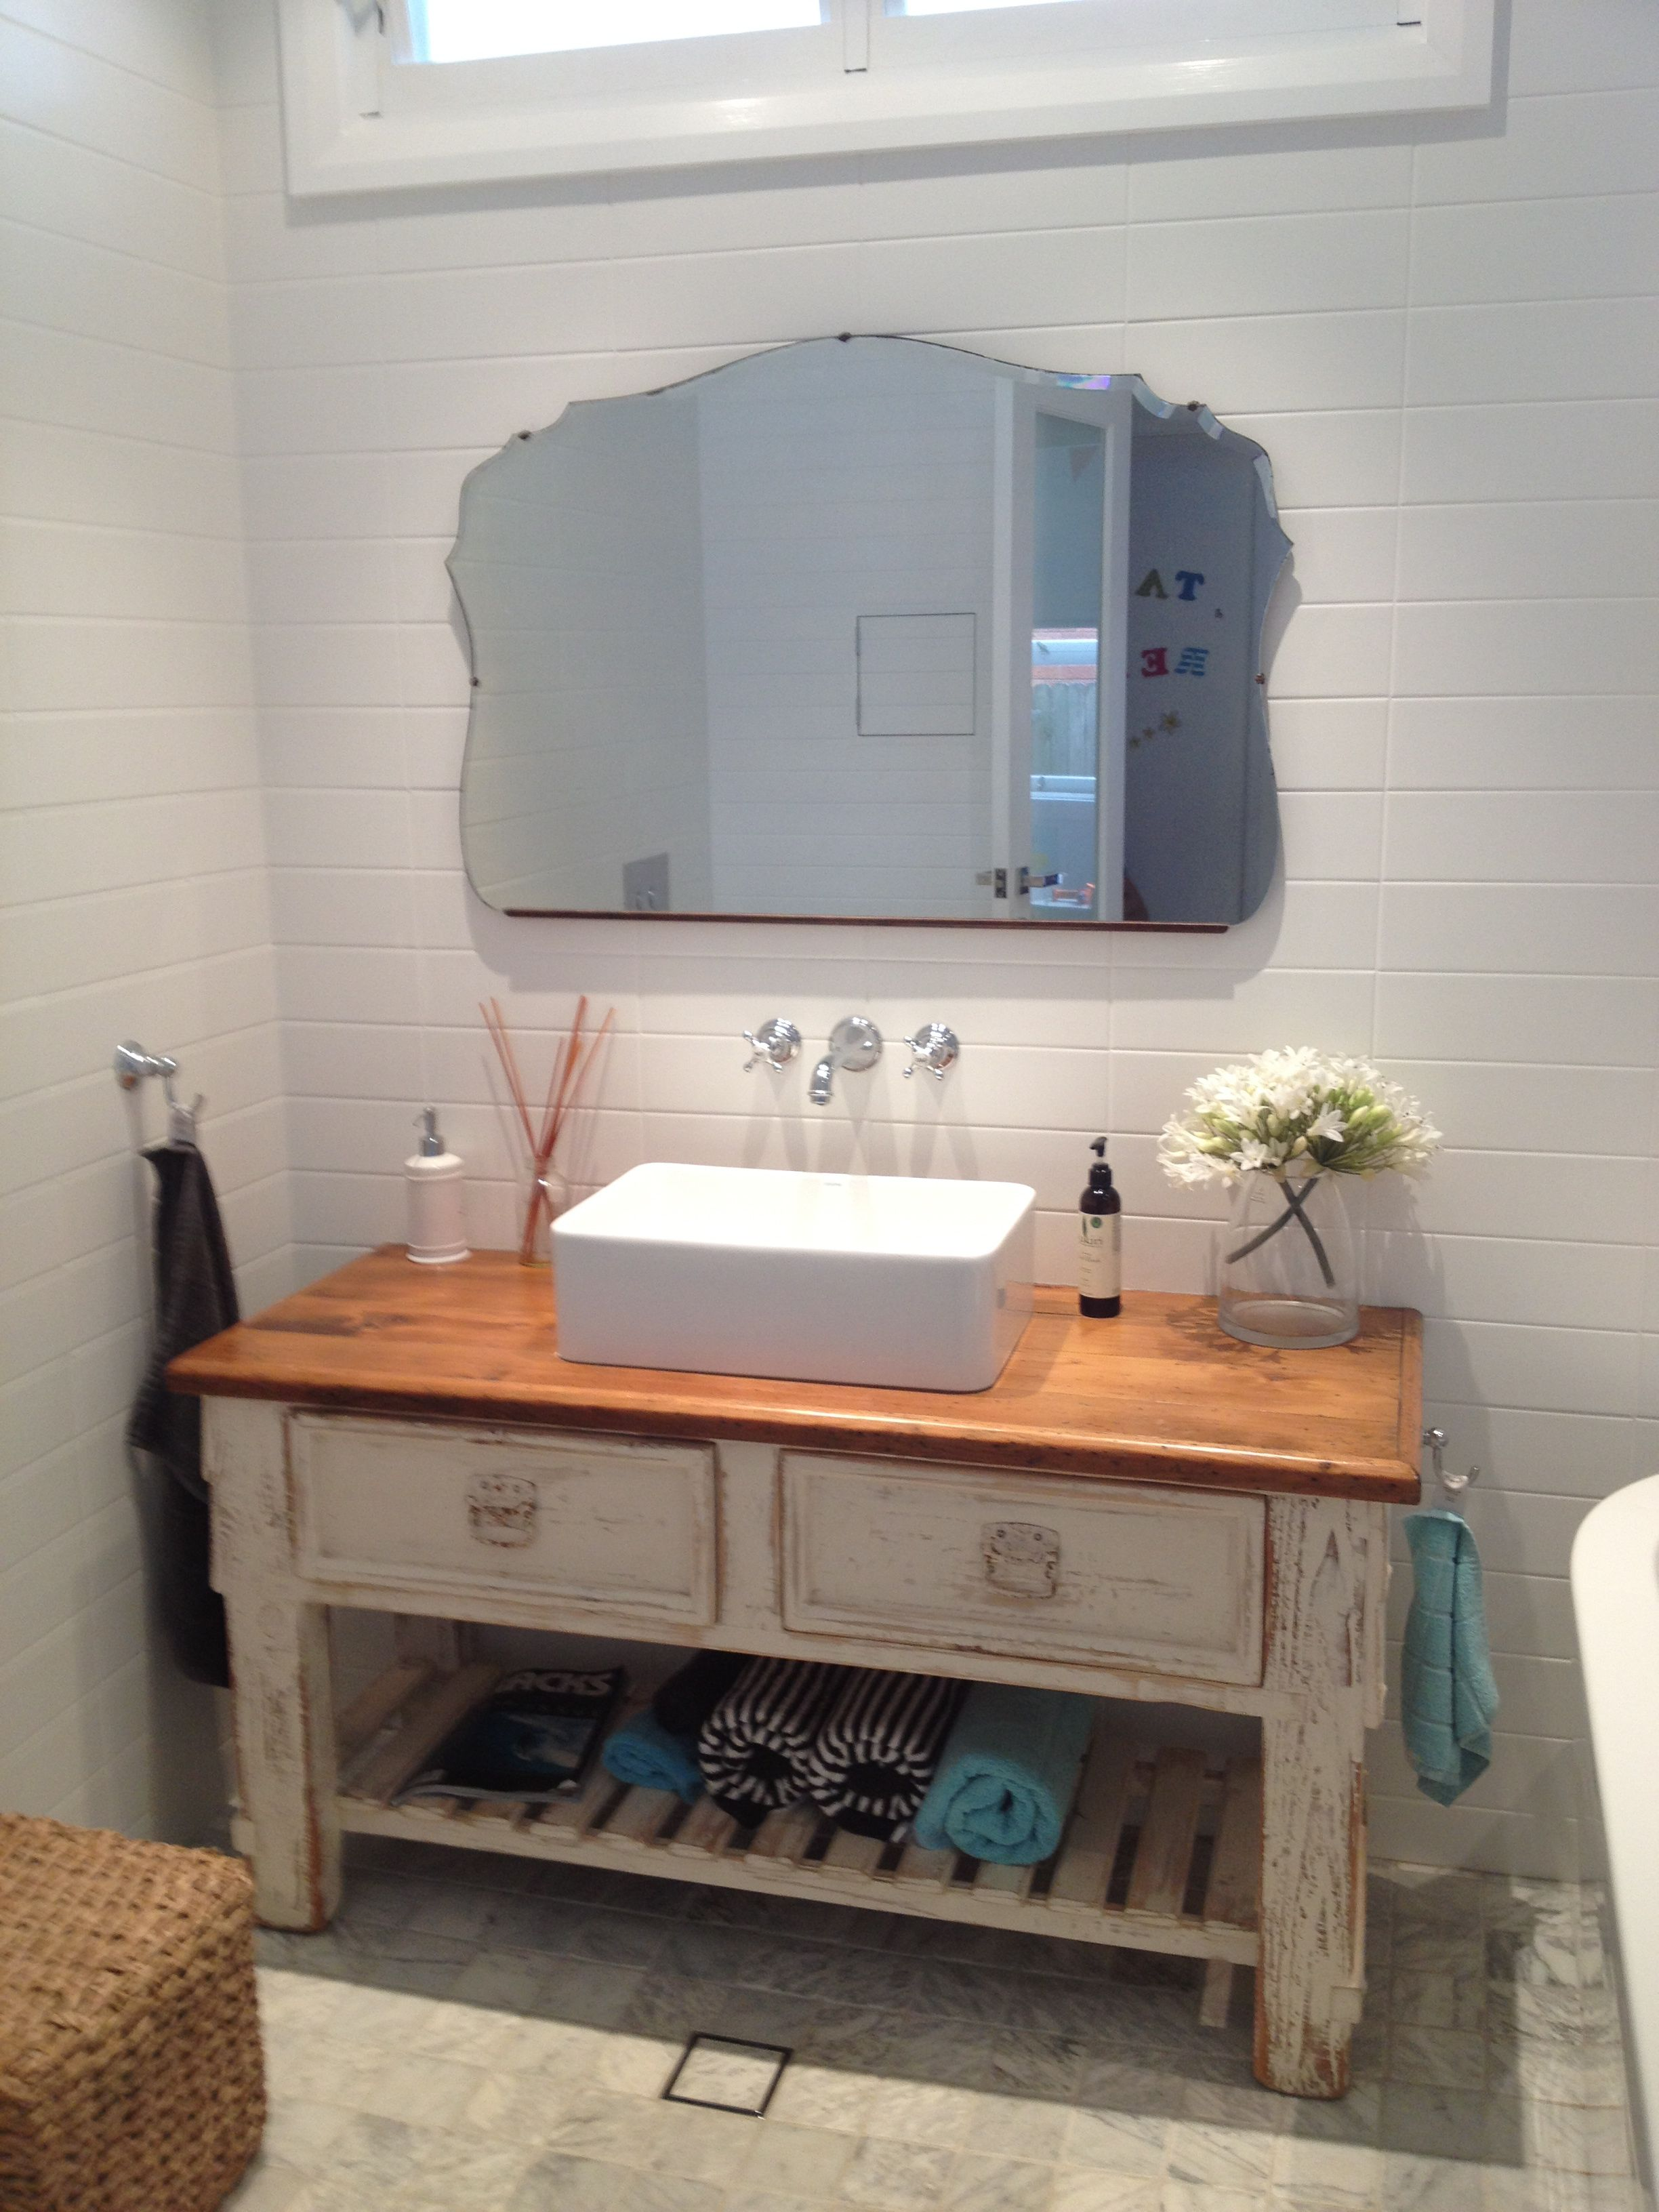 Bathroom cabinets shabby chic - Shabby Chic Bathroom Sink Unit Fleurdelissf